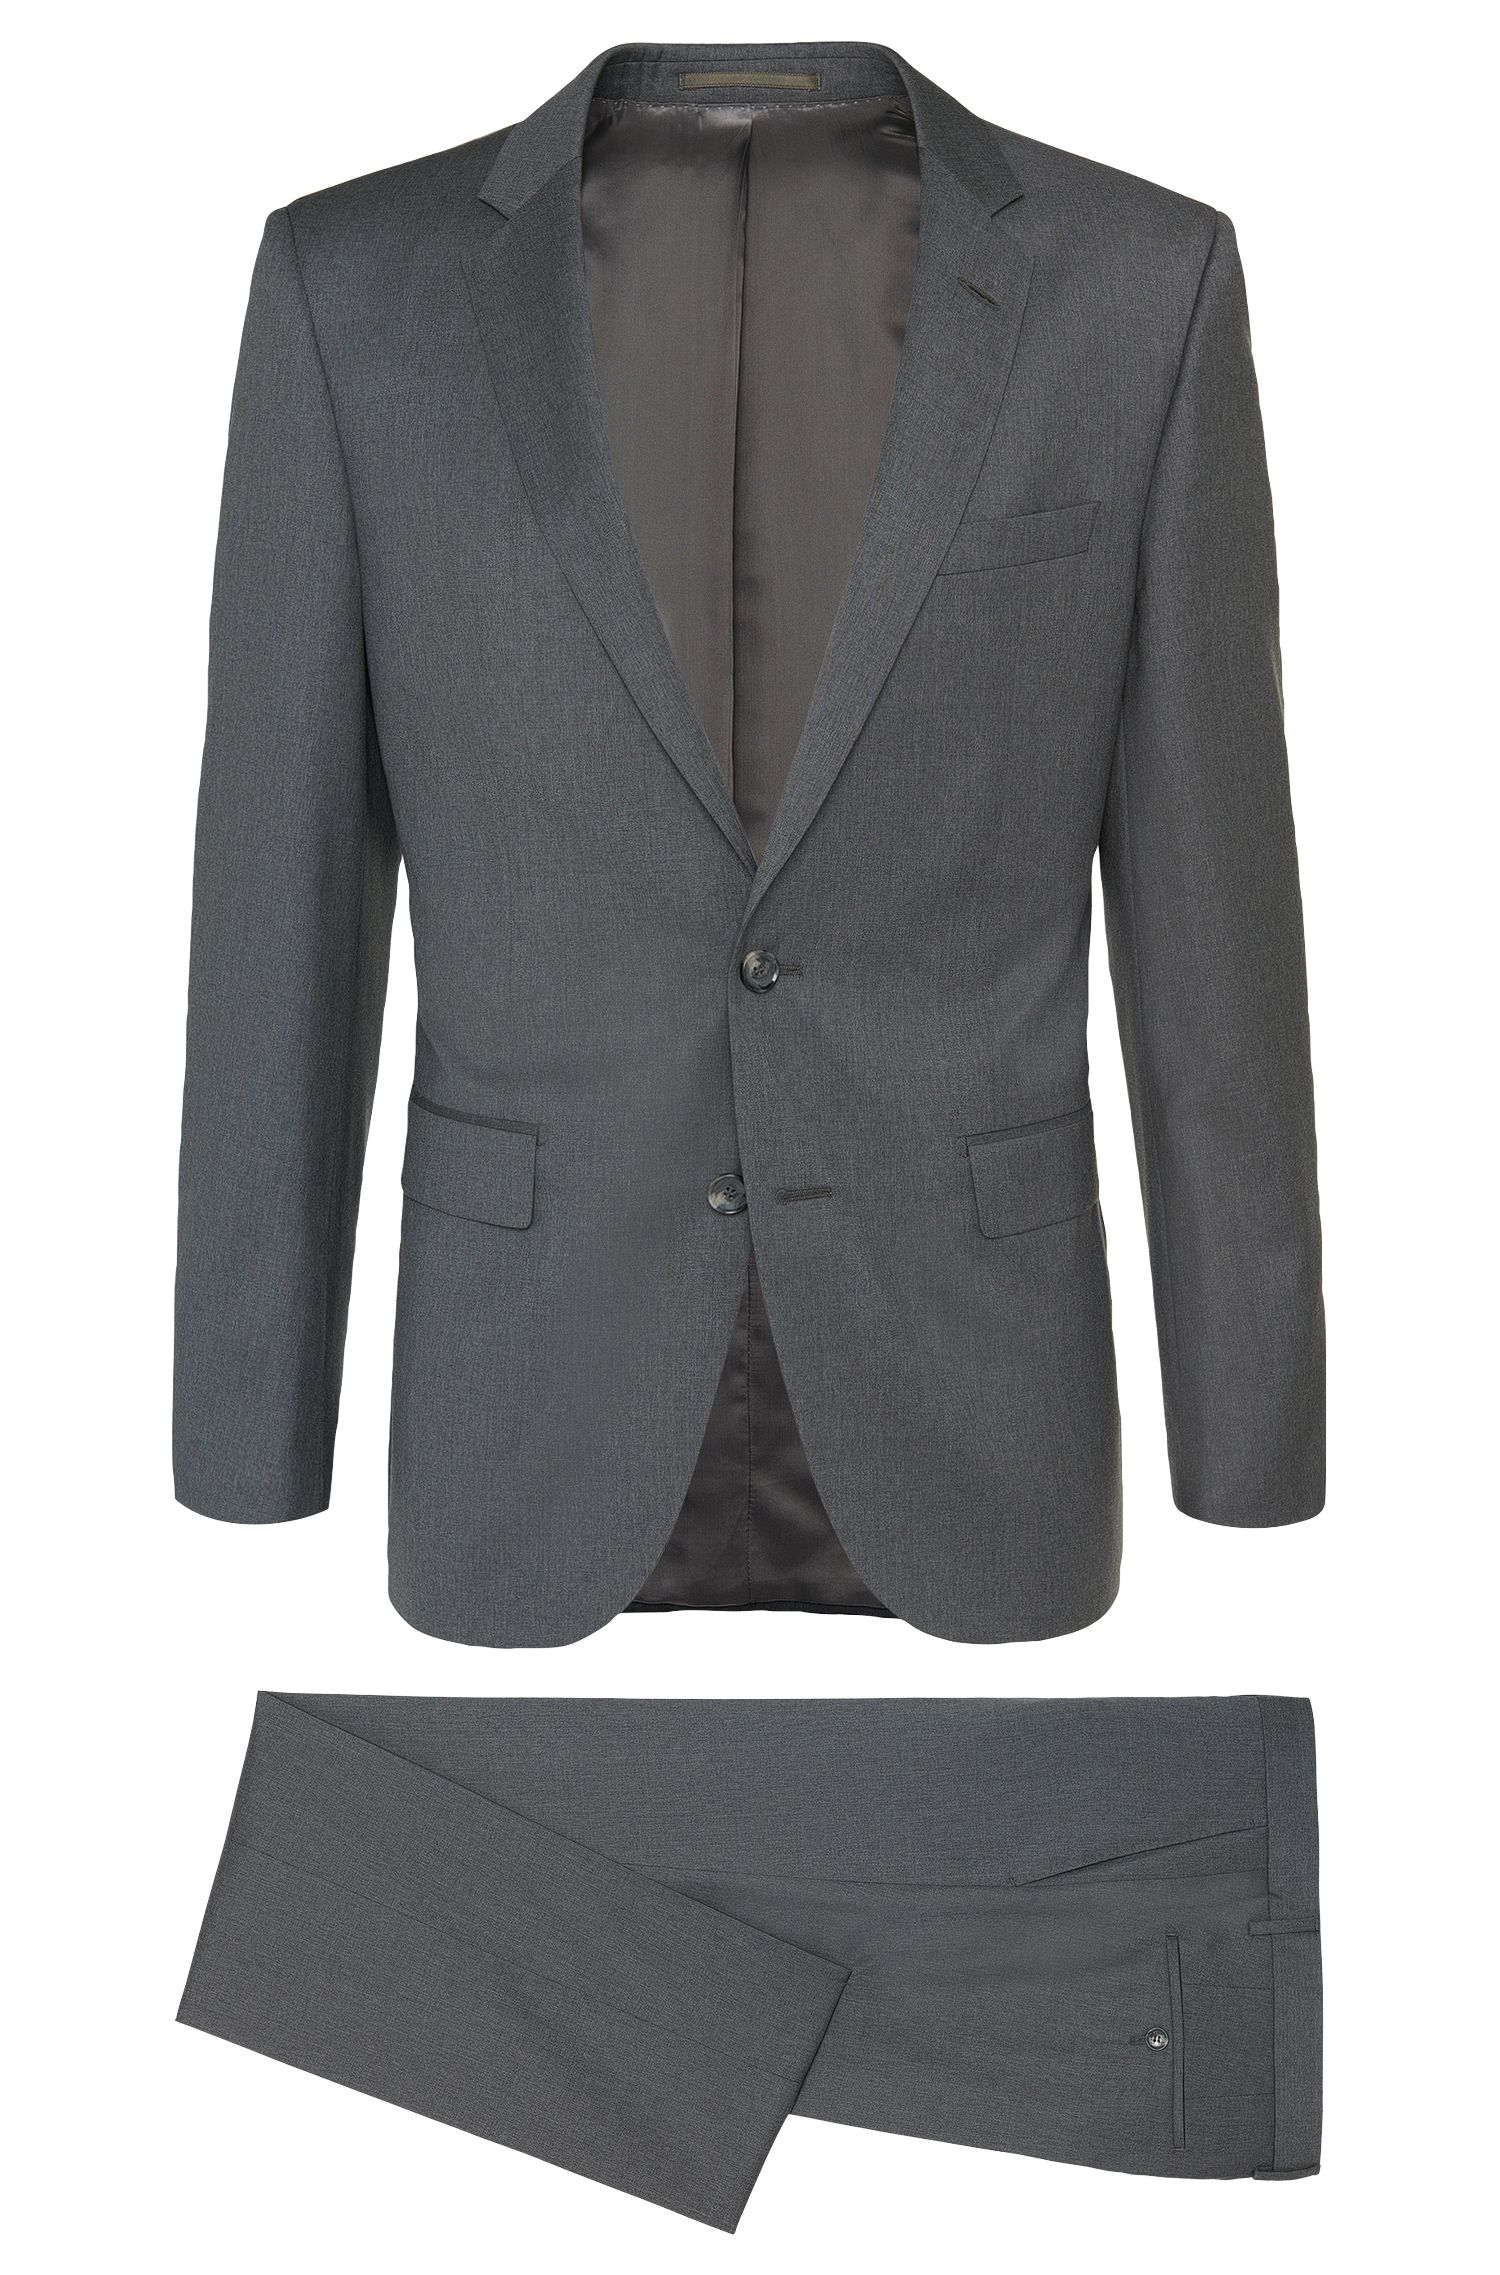 Costume Slim Fit Tailored en laine vierge chinée : « T-Harvers2/Glover1 »